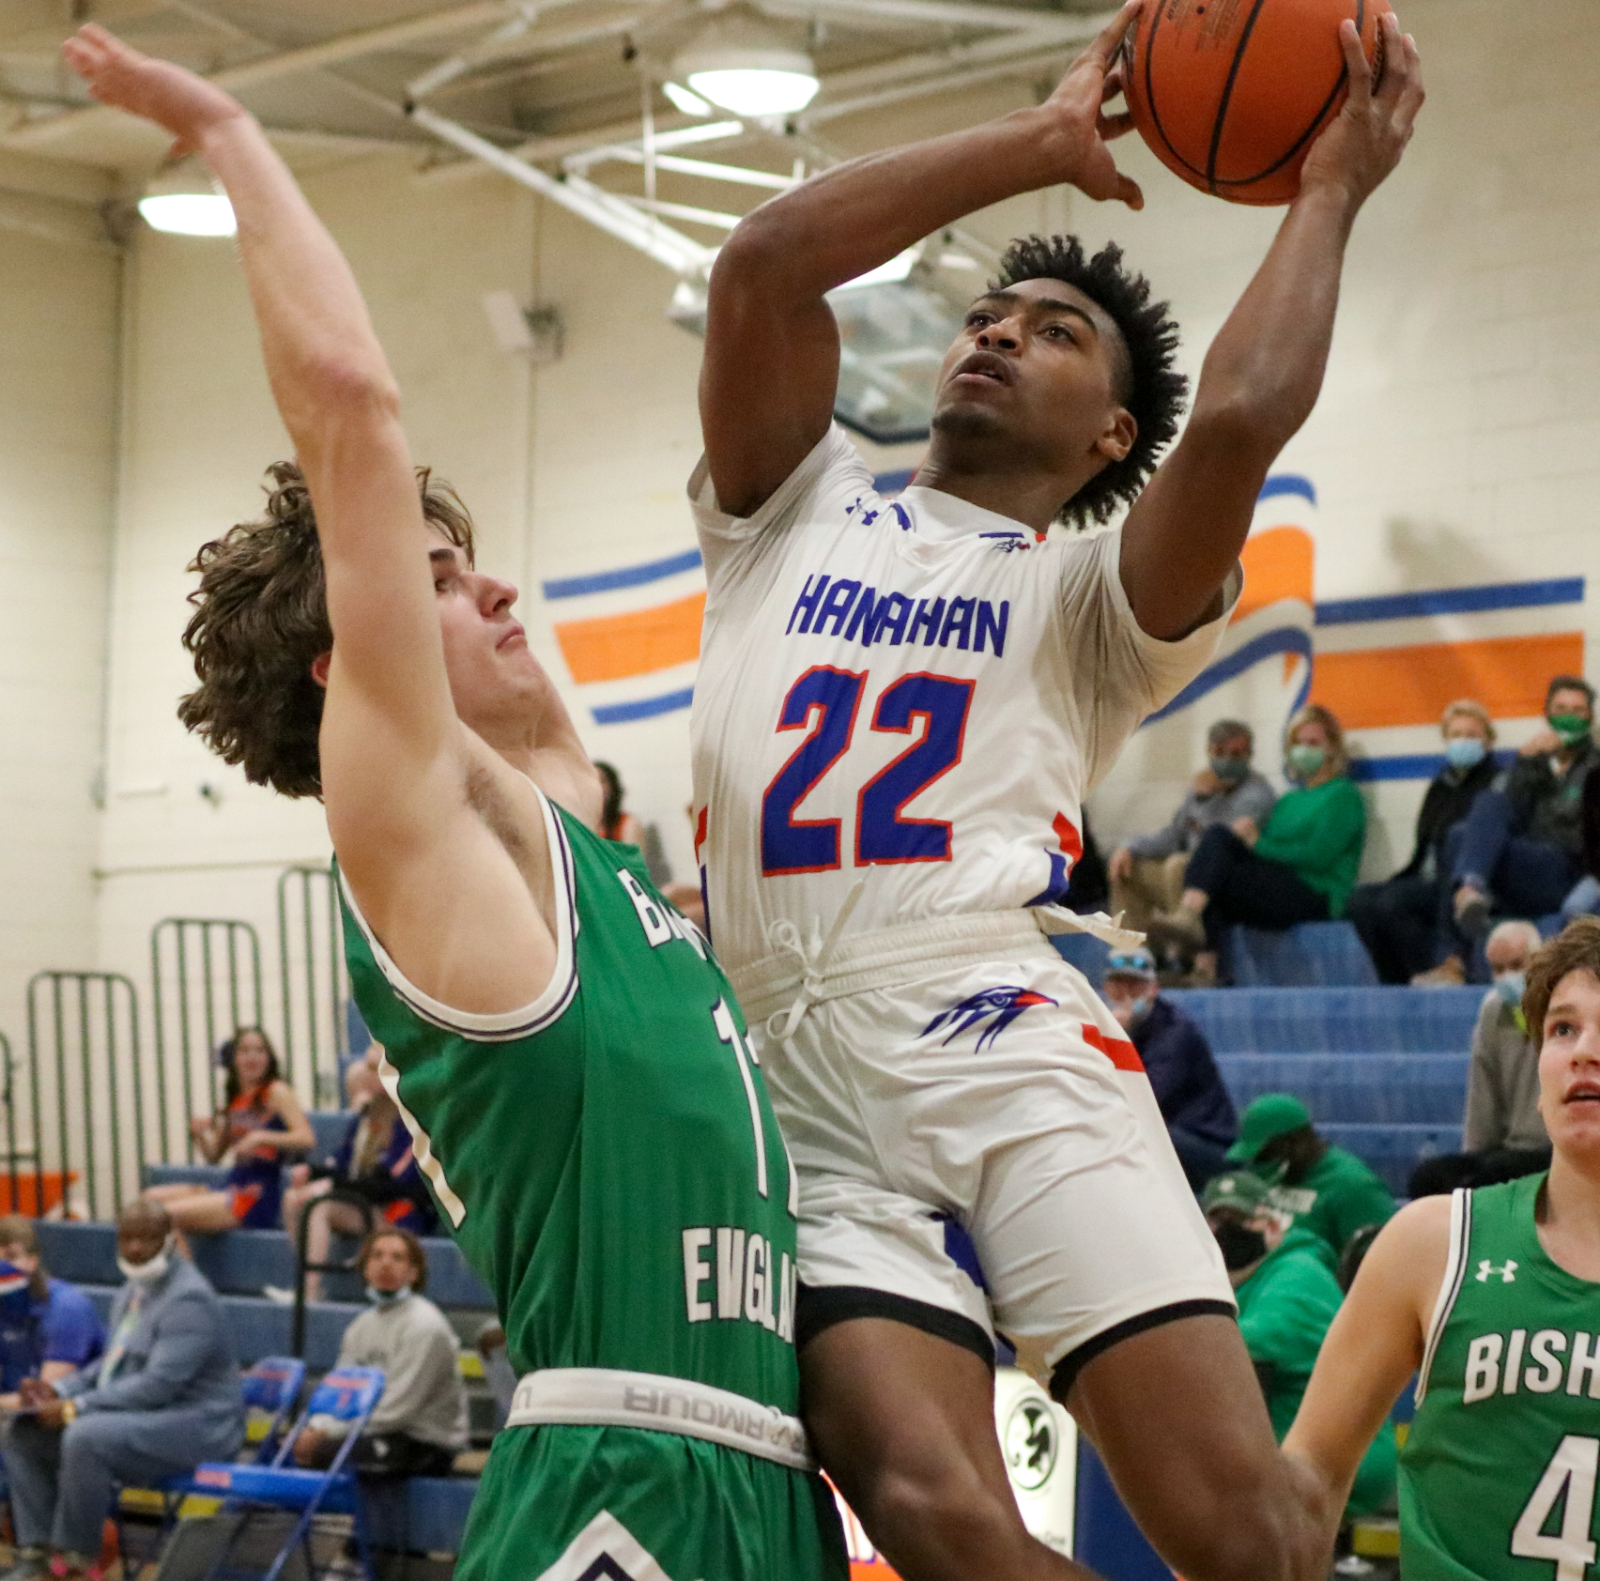 1.18.2021 (PHOTO GALLERY): Hanahan Varsity Boys BKB vs Bishop England HS – Photos by Cyril Samonte